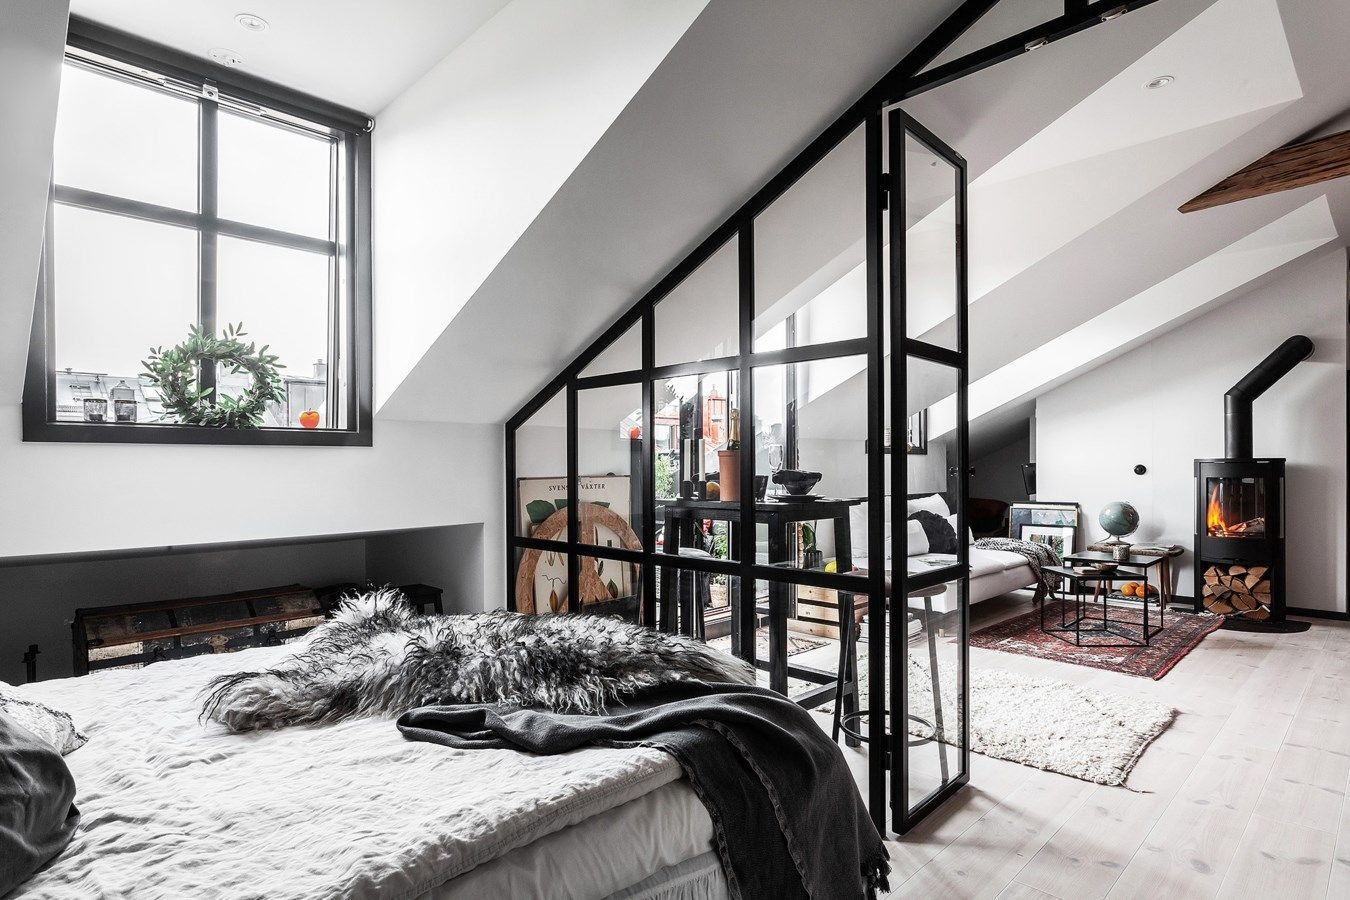 An Industrial Look For A Small Attic Apartment in Stockholm #atticapartment